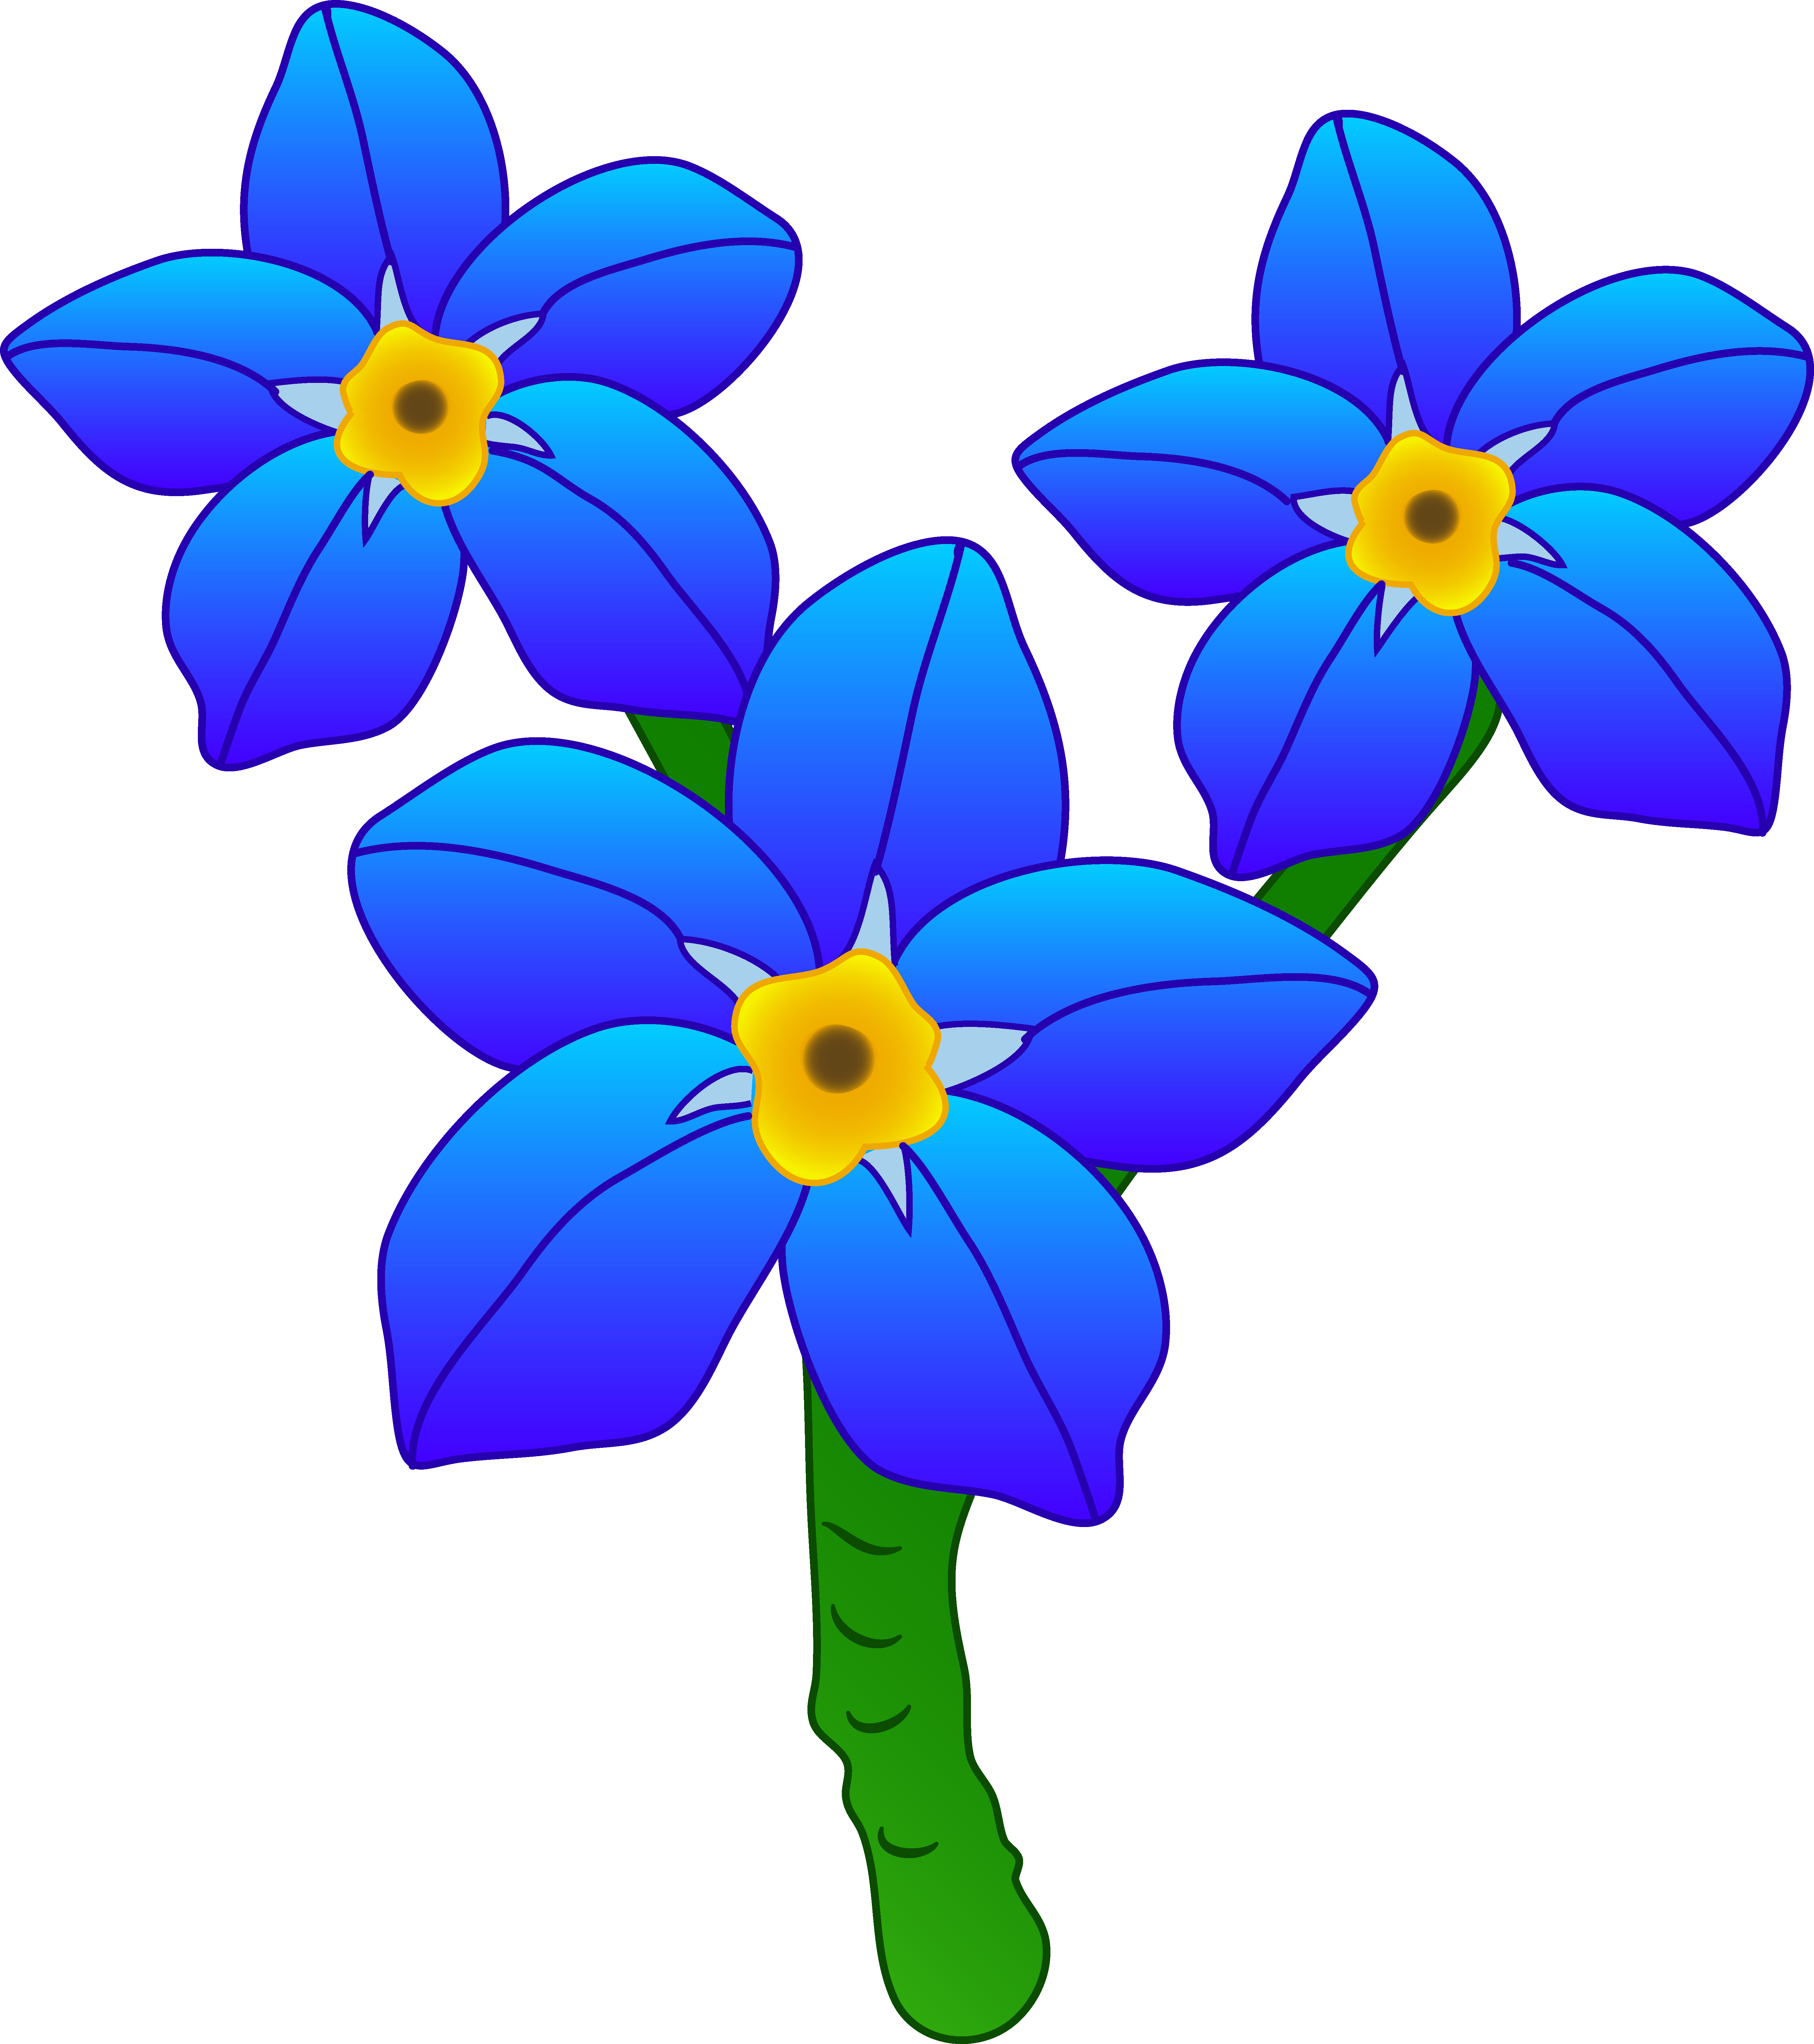 Blue Flower clipart pretty flower Me Me Three Forget Flowers